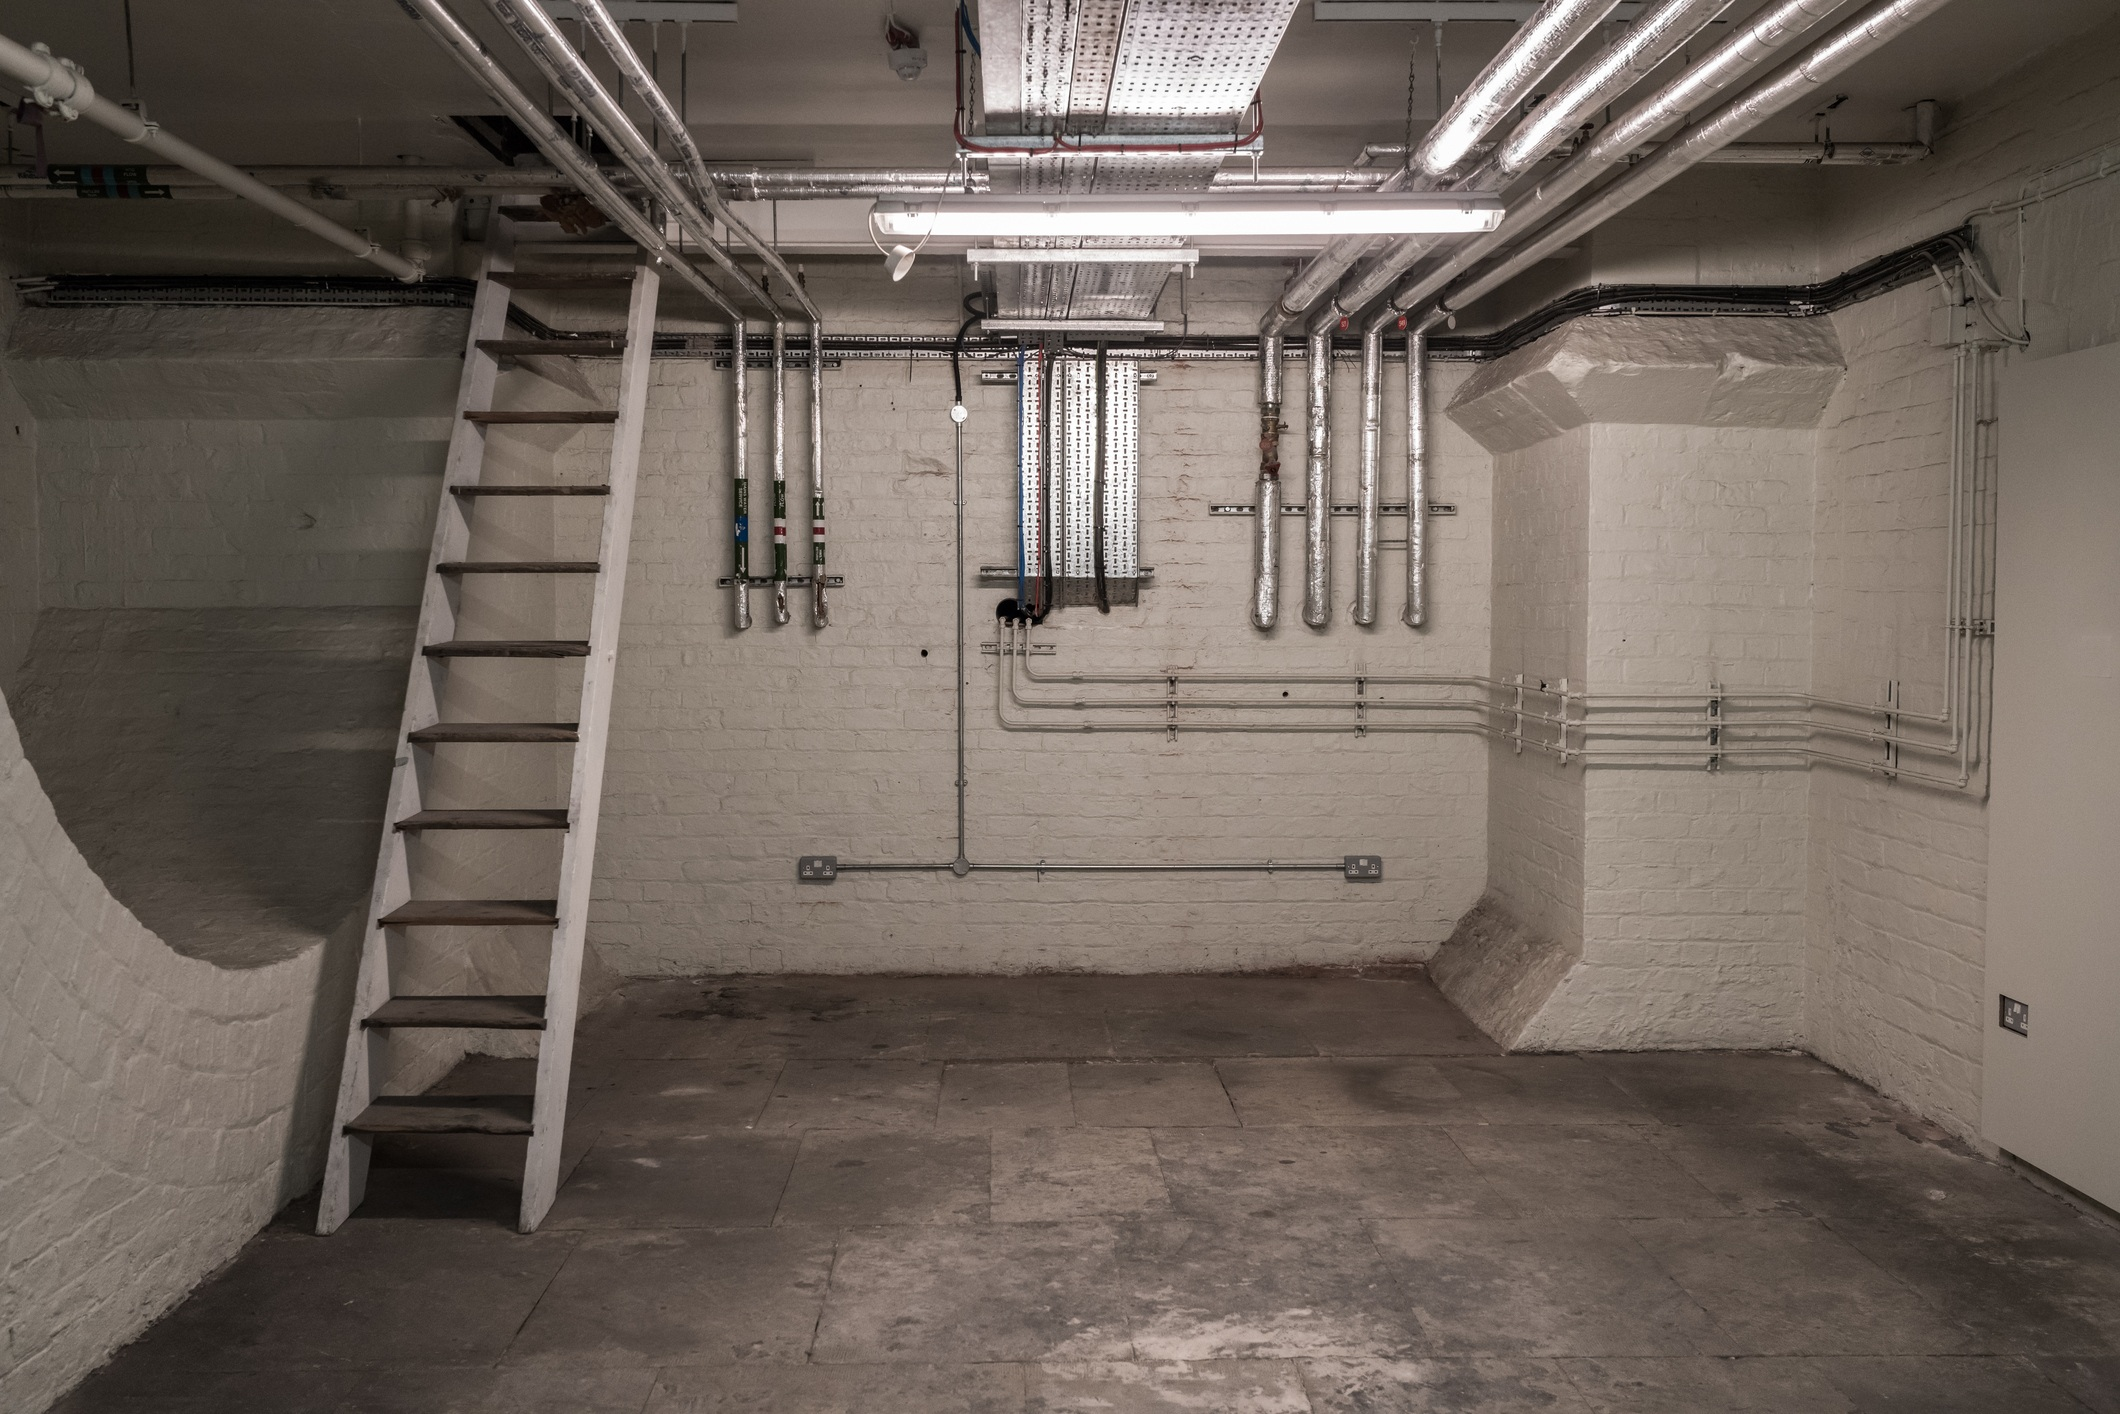 Scary unfinished Basement Pipes